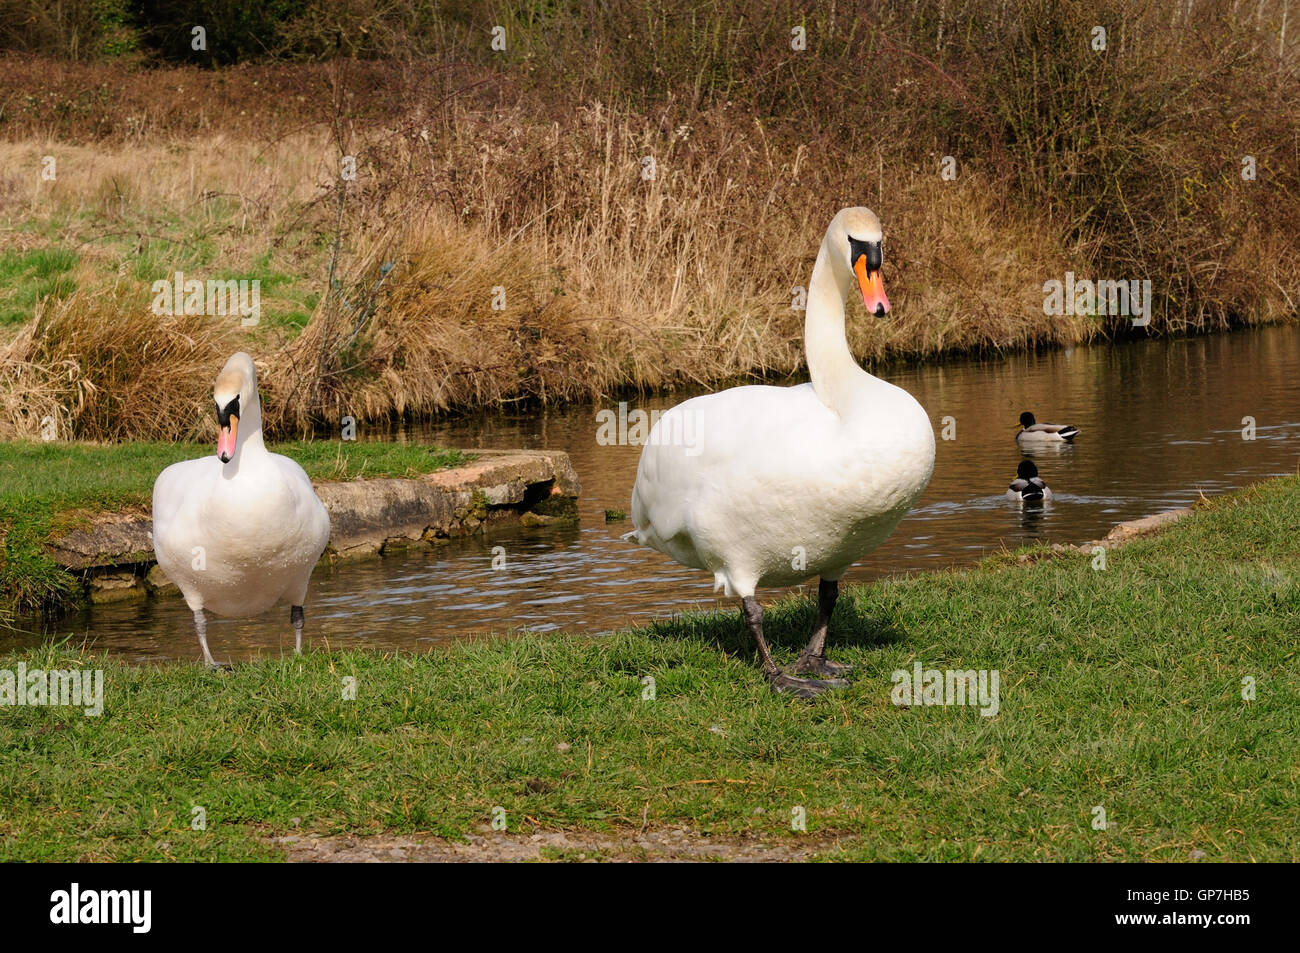 A pair of mute swans walking across a canal bank in an aggressive manner (Cygnus olor). - Stock Image